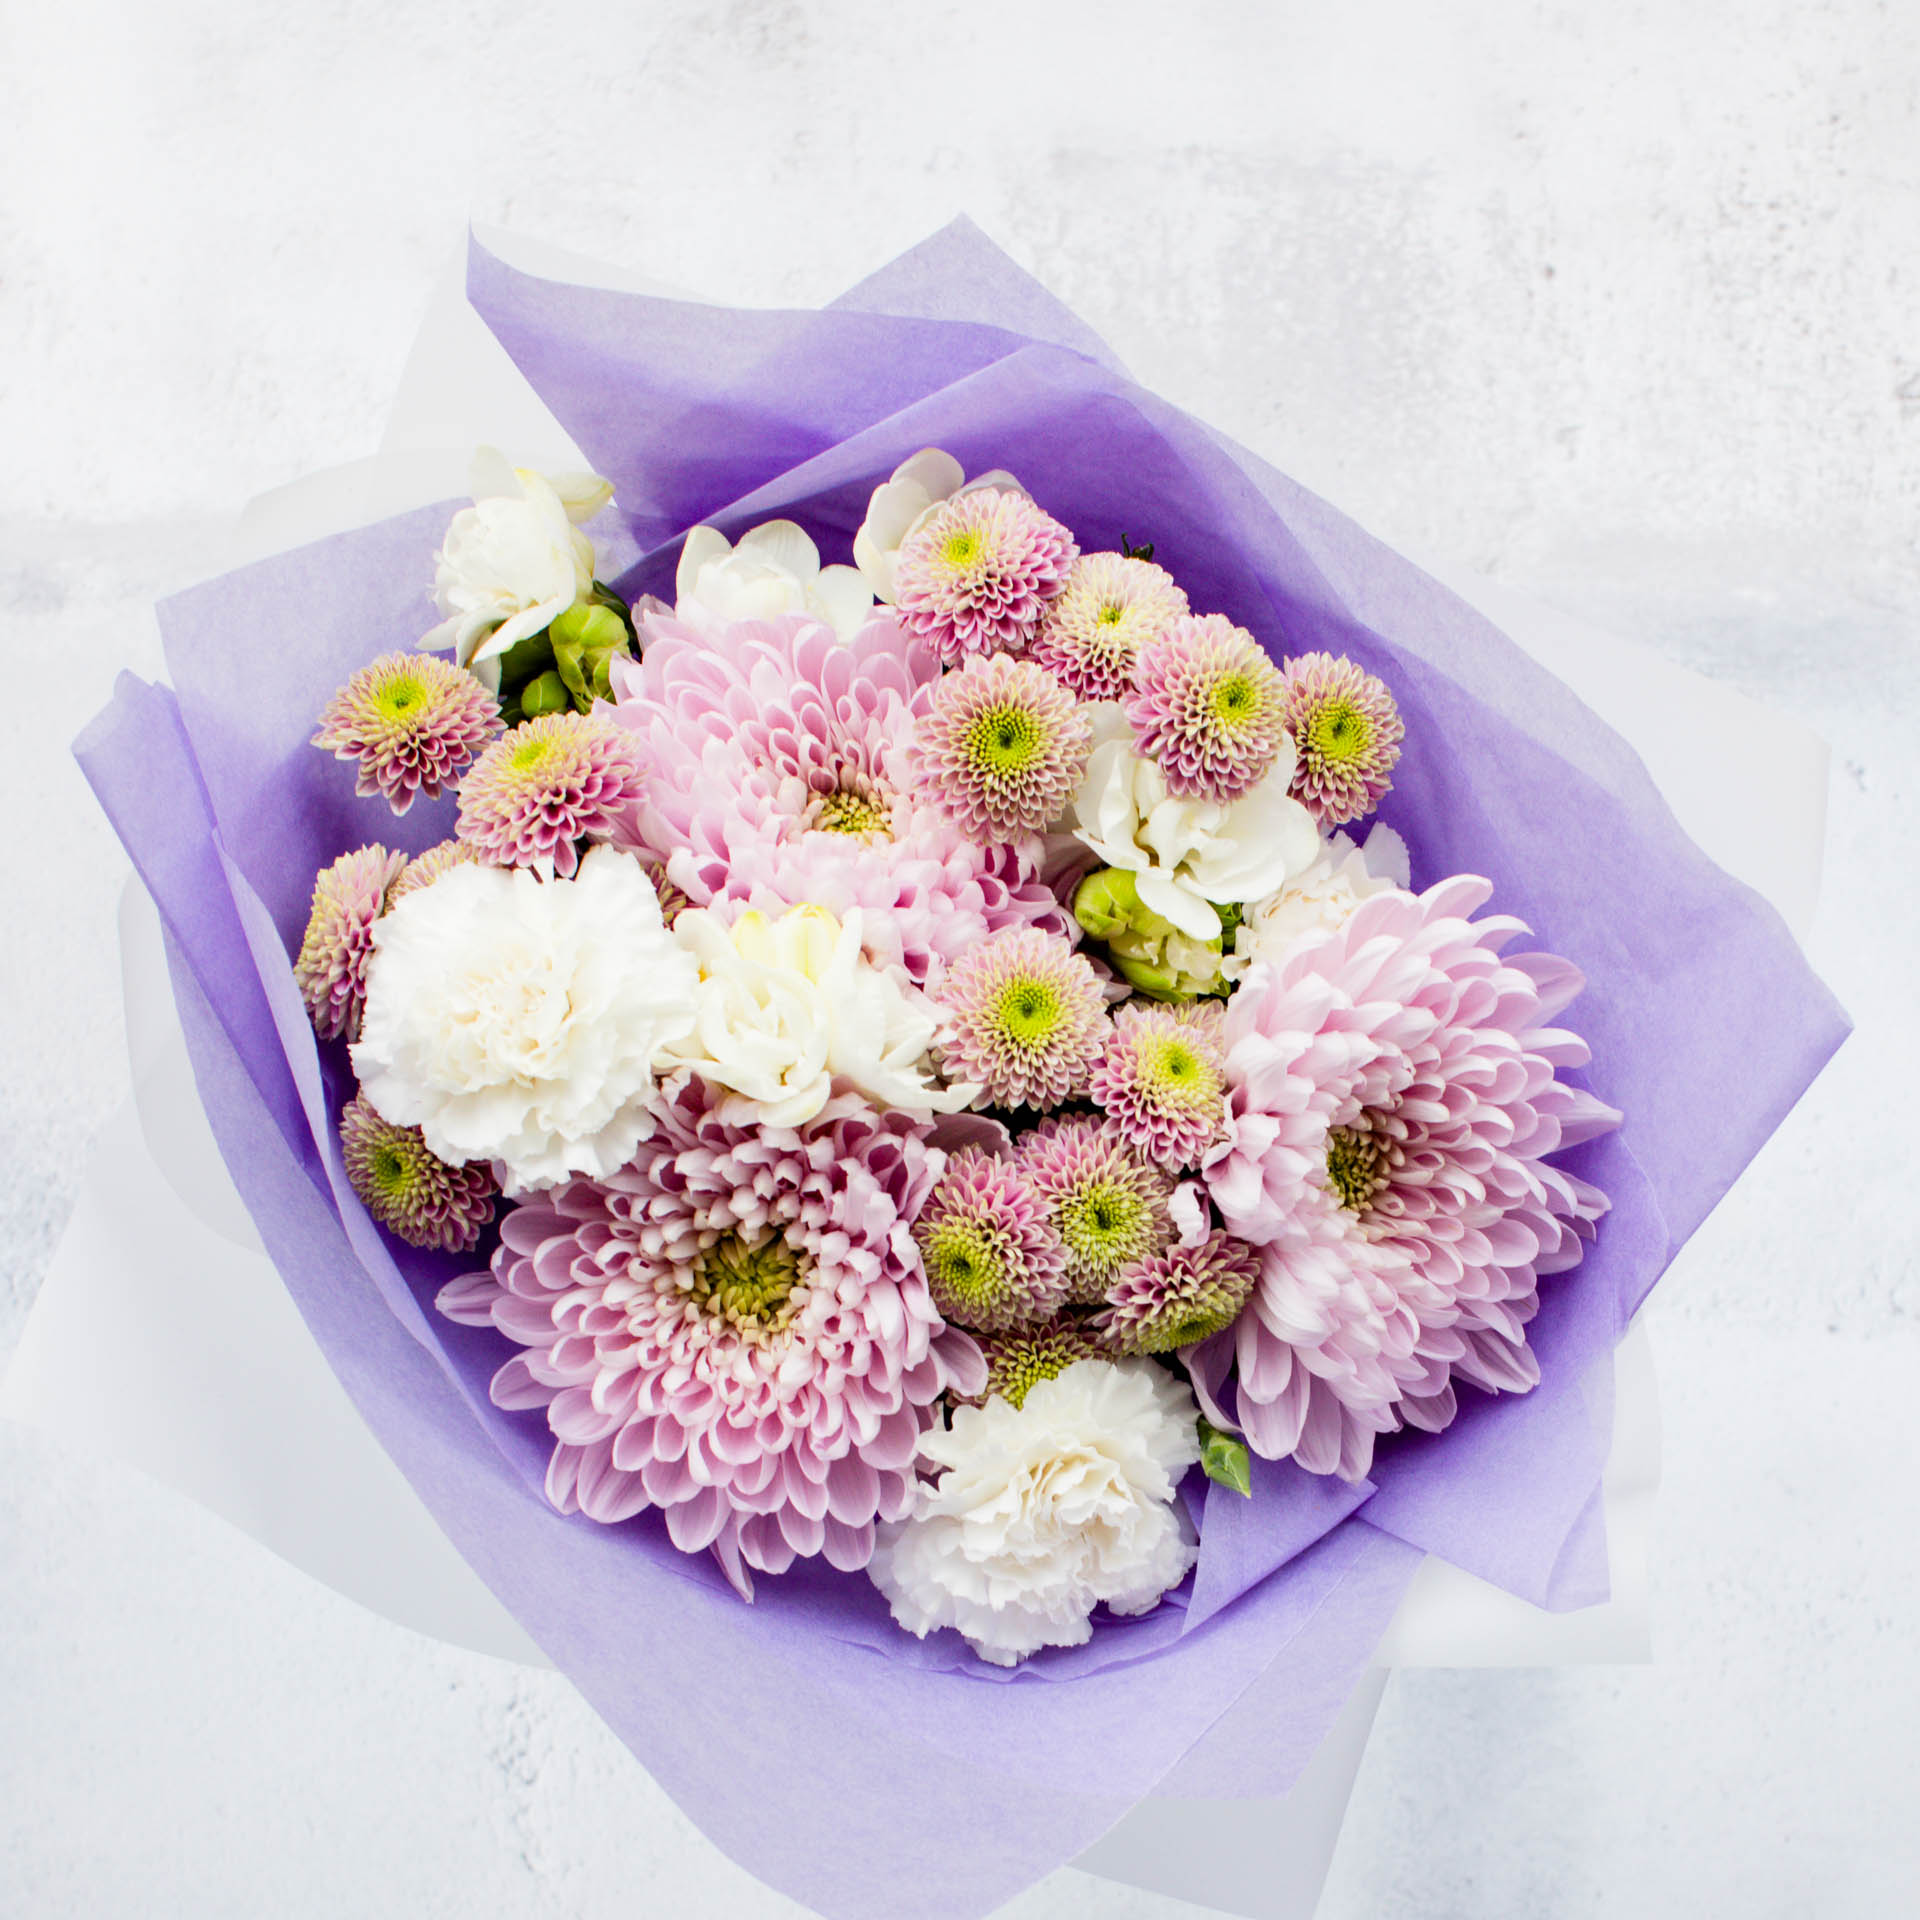 purple floral bouquet with chrysanthemums